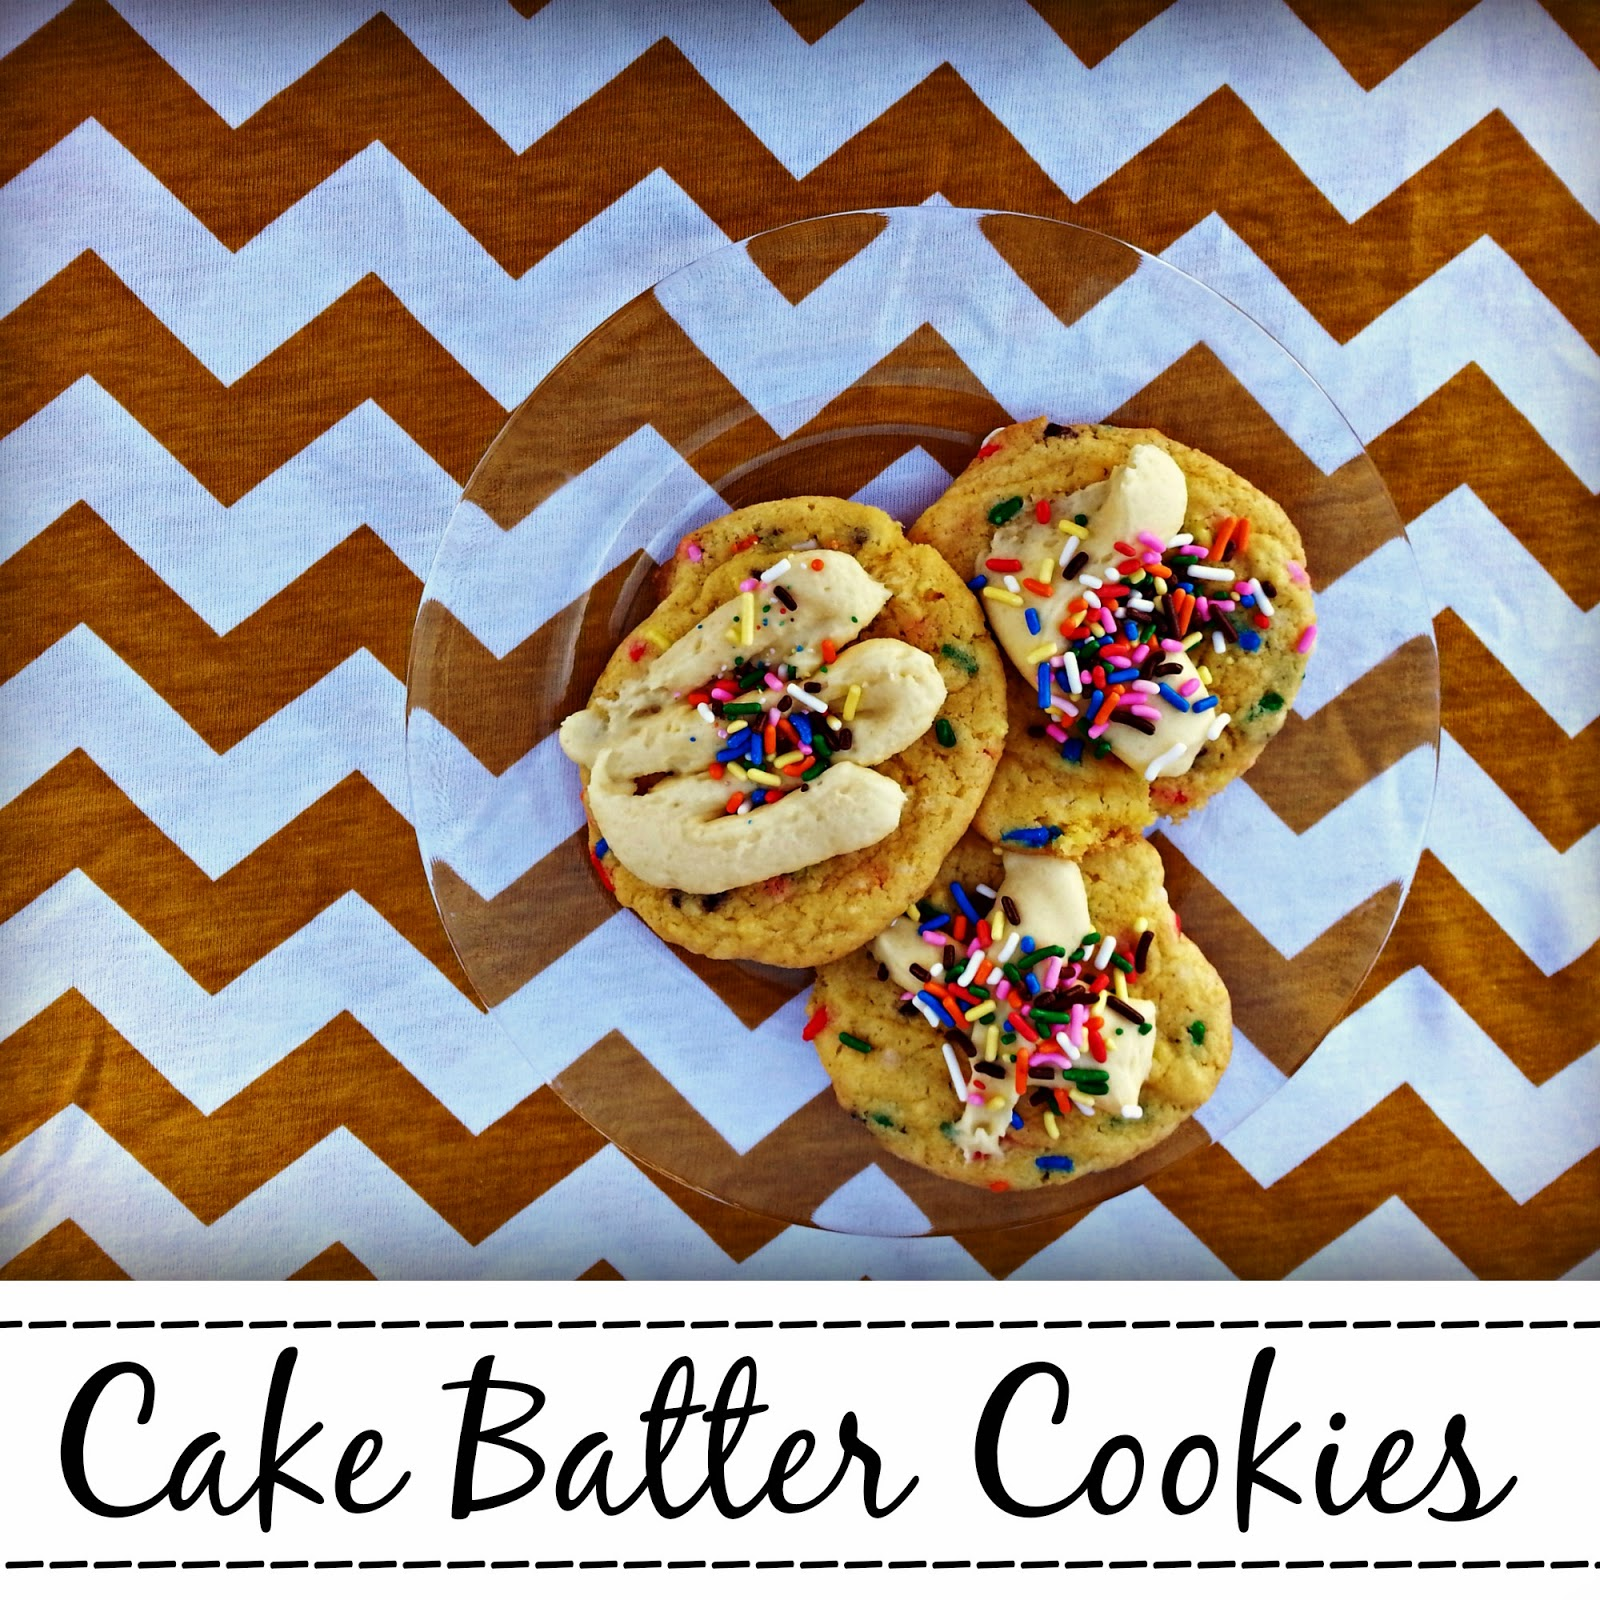 Double Cake Batter Cookies...